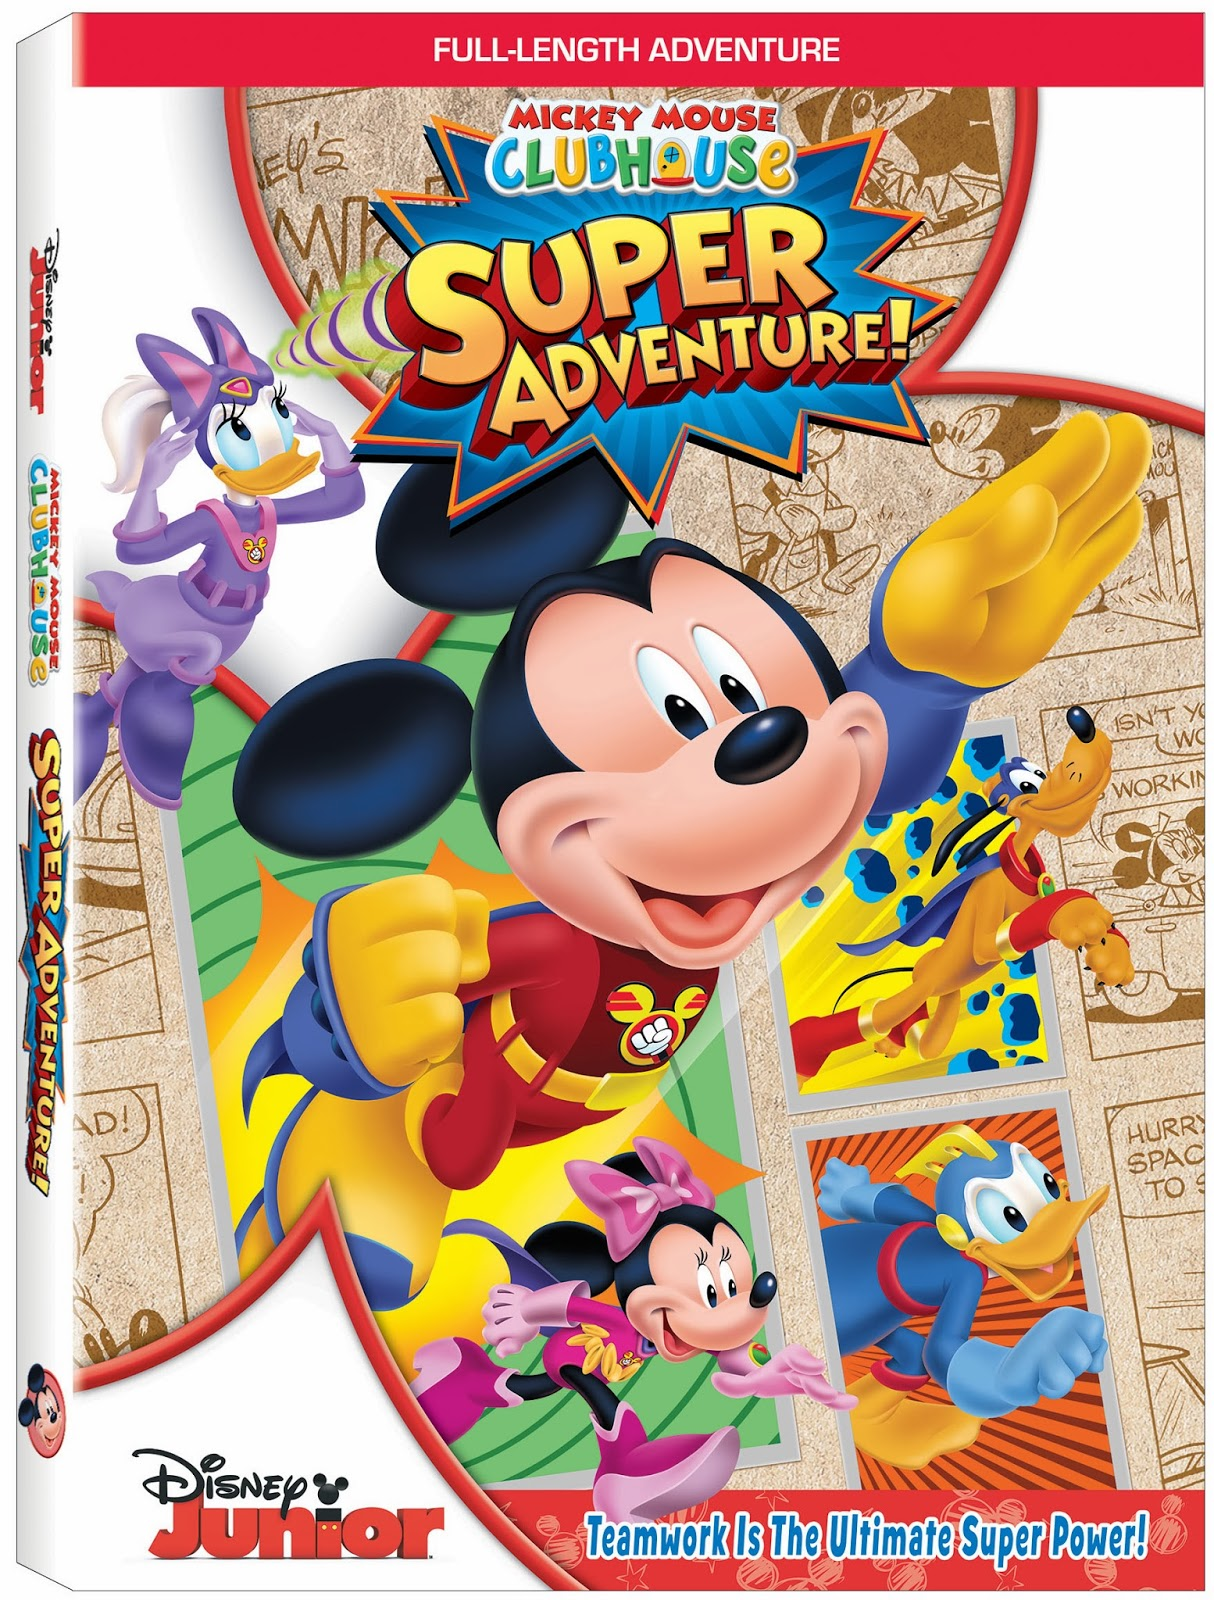 Mickey mouse clubhouse super adventure coming to dvd december 3 2013